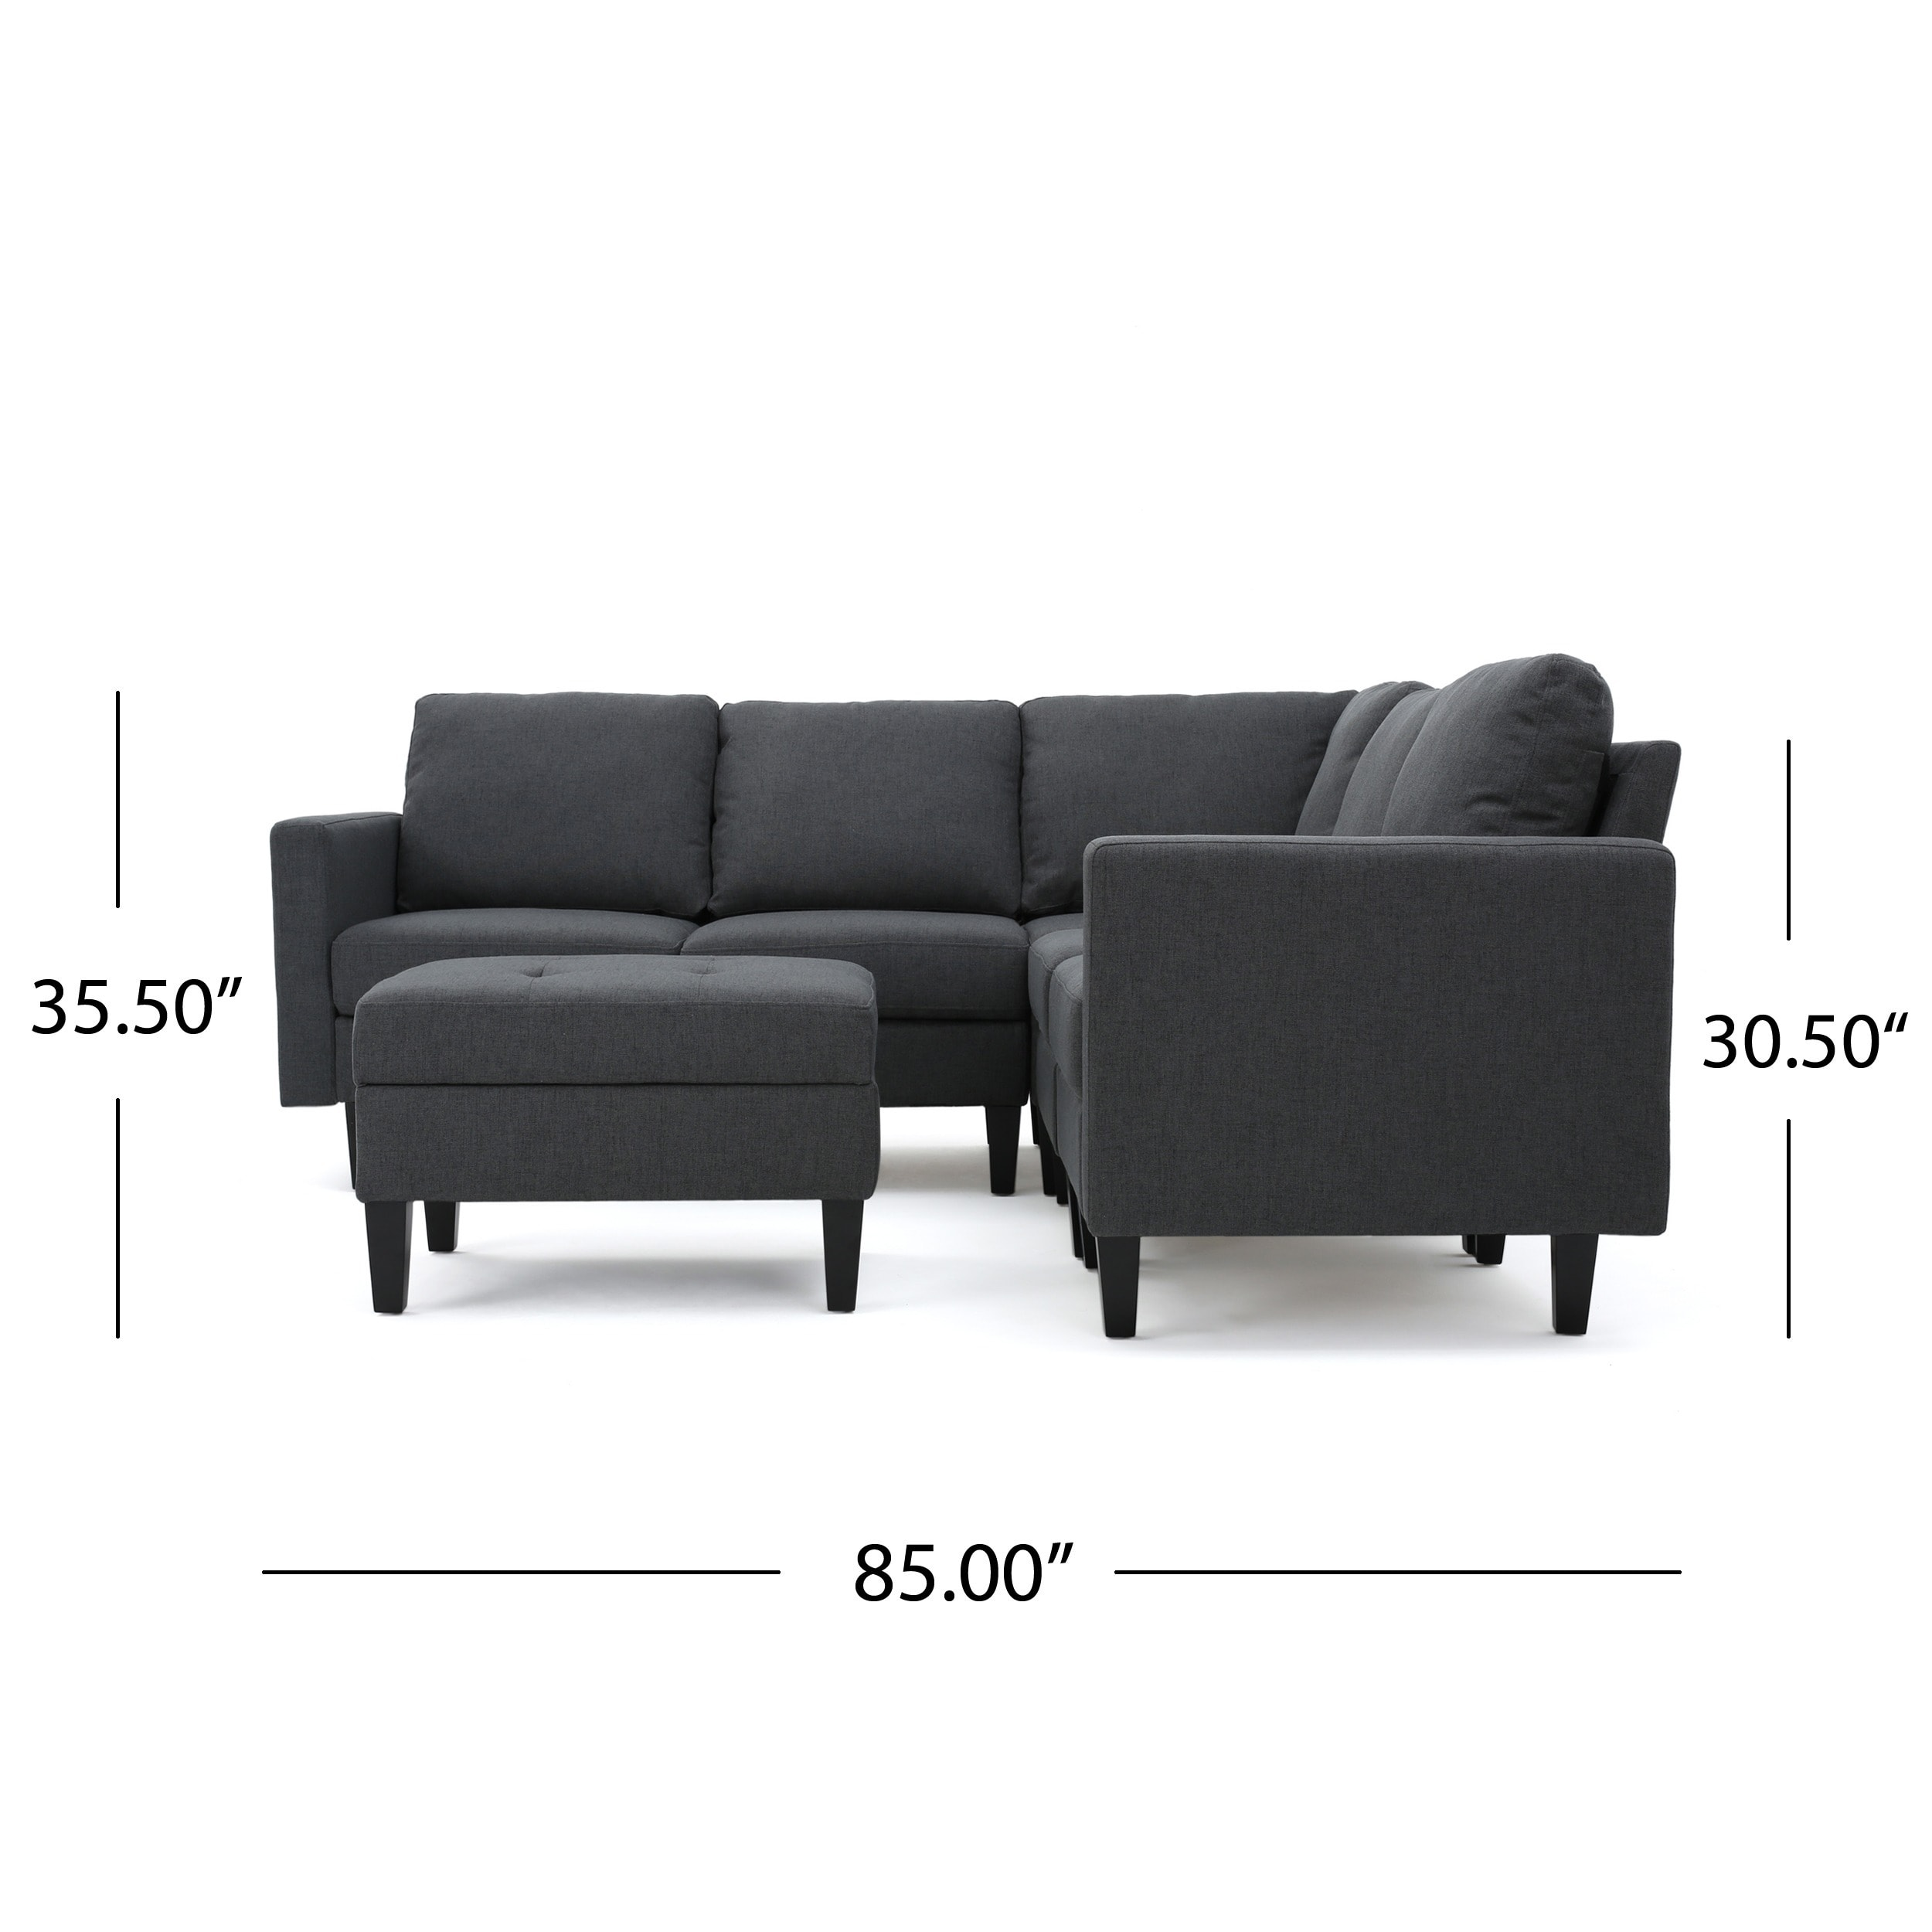 Tremendous Zahra 6 Piece Fabric Sofa Sectional With Ottoman By Christopher Knight Home Gmtry Best Dining Table And Chair Ideas Images Gmtryco